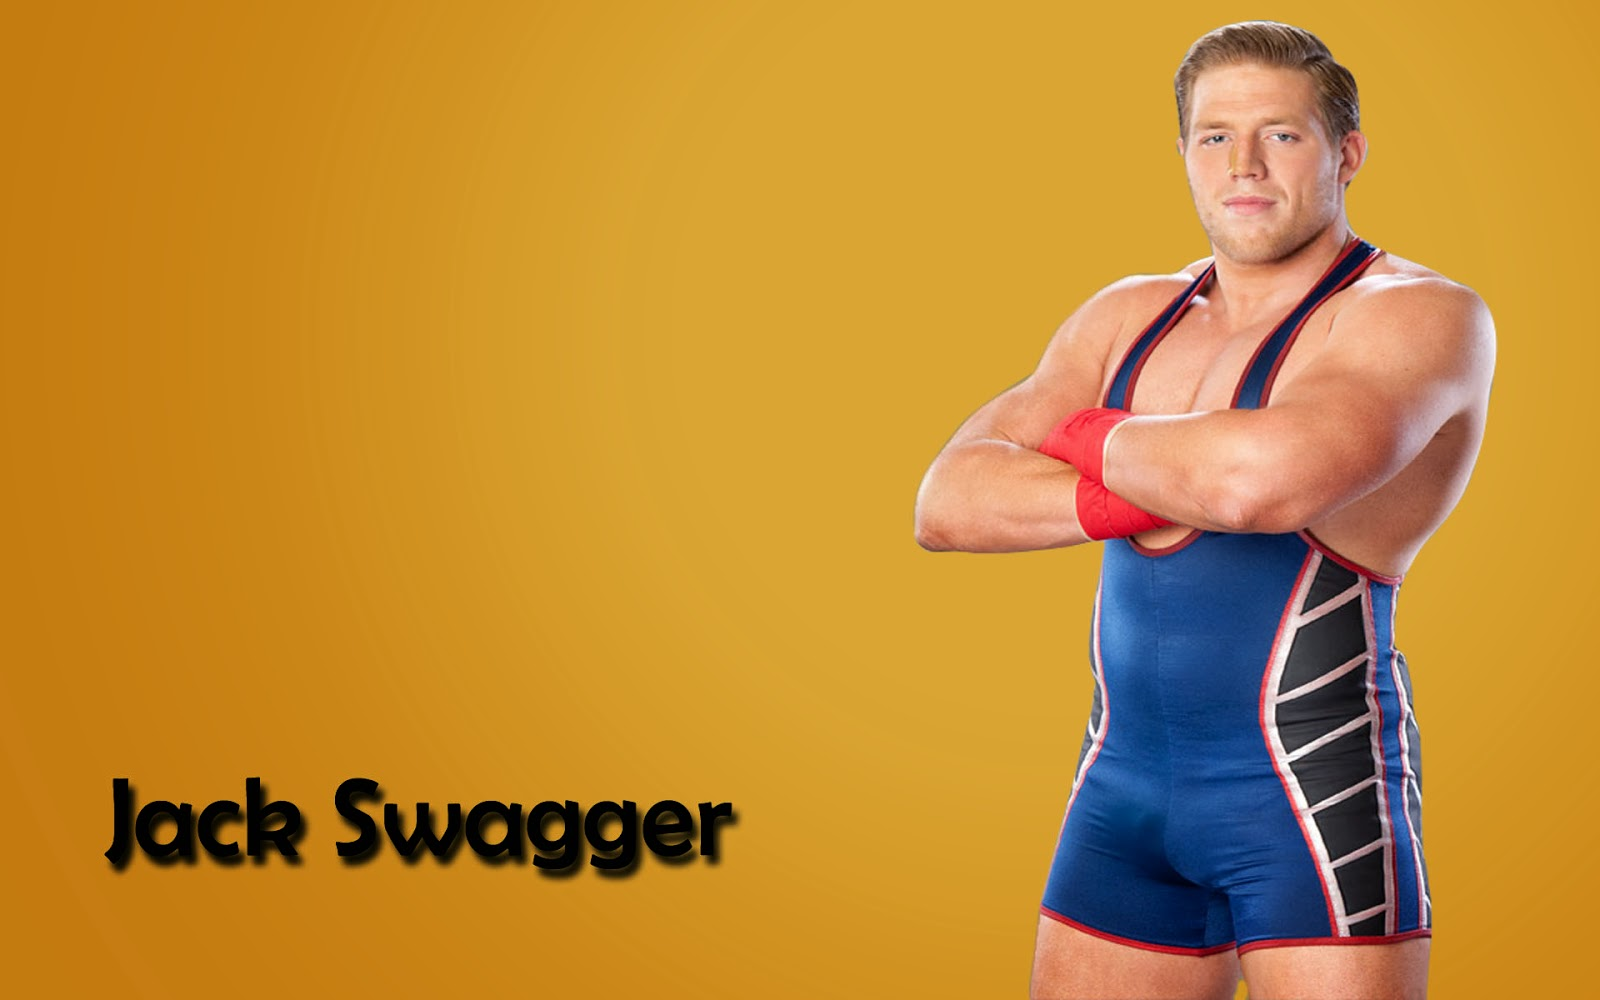 Jack Swagger Hd Wallpapers Free Download | WWE HD WALLPAPER FREE